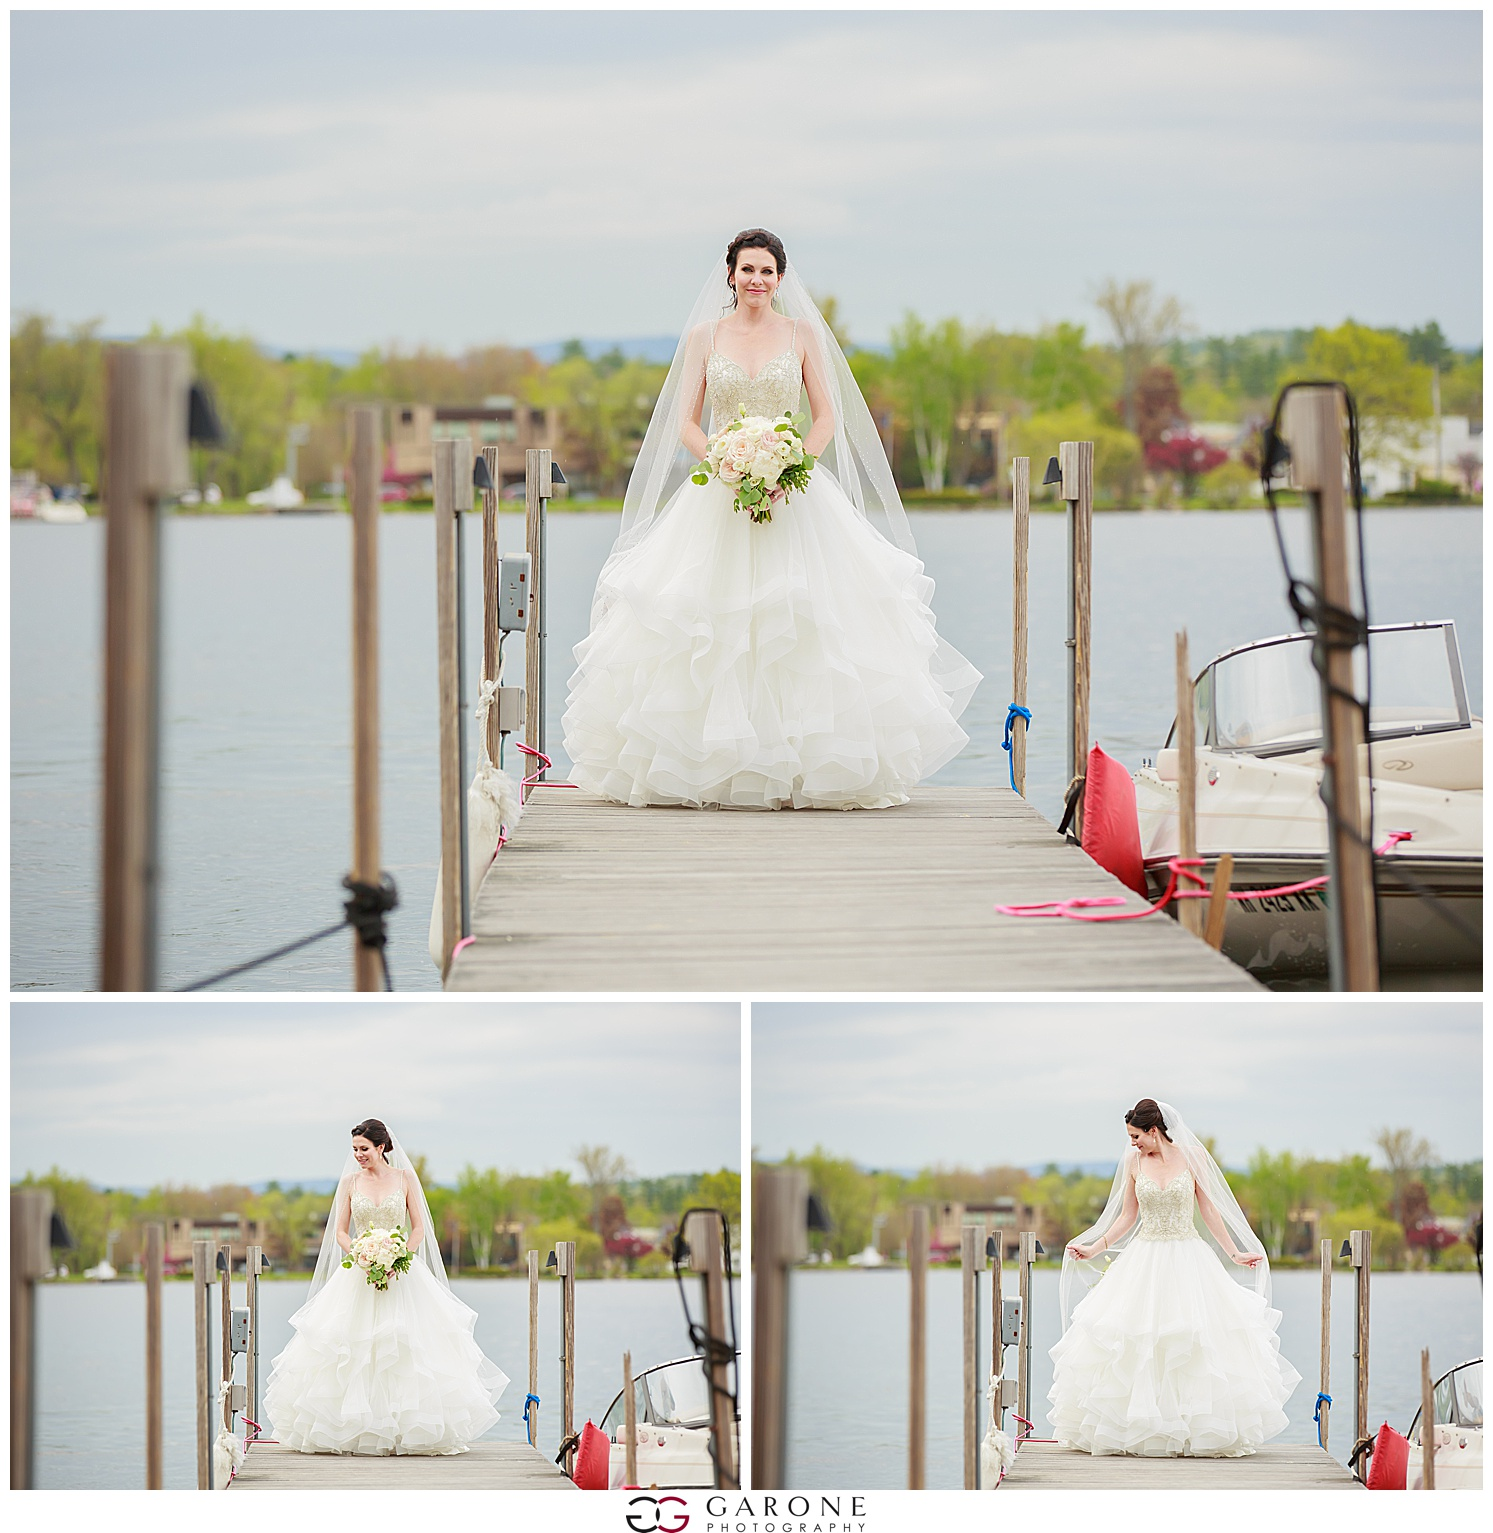 Shauna_Nathan_Carriage_House_Chuch_Landing_Lake_Winnapausakee_Wedding_0026.jpg